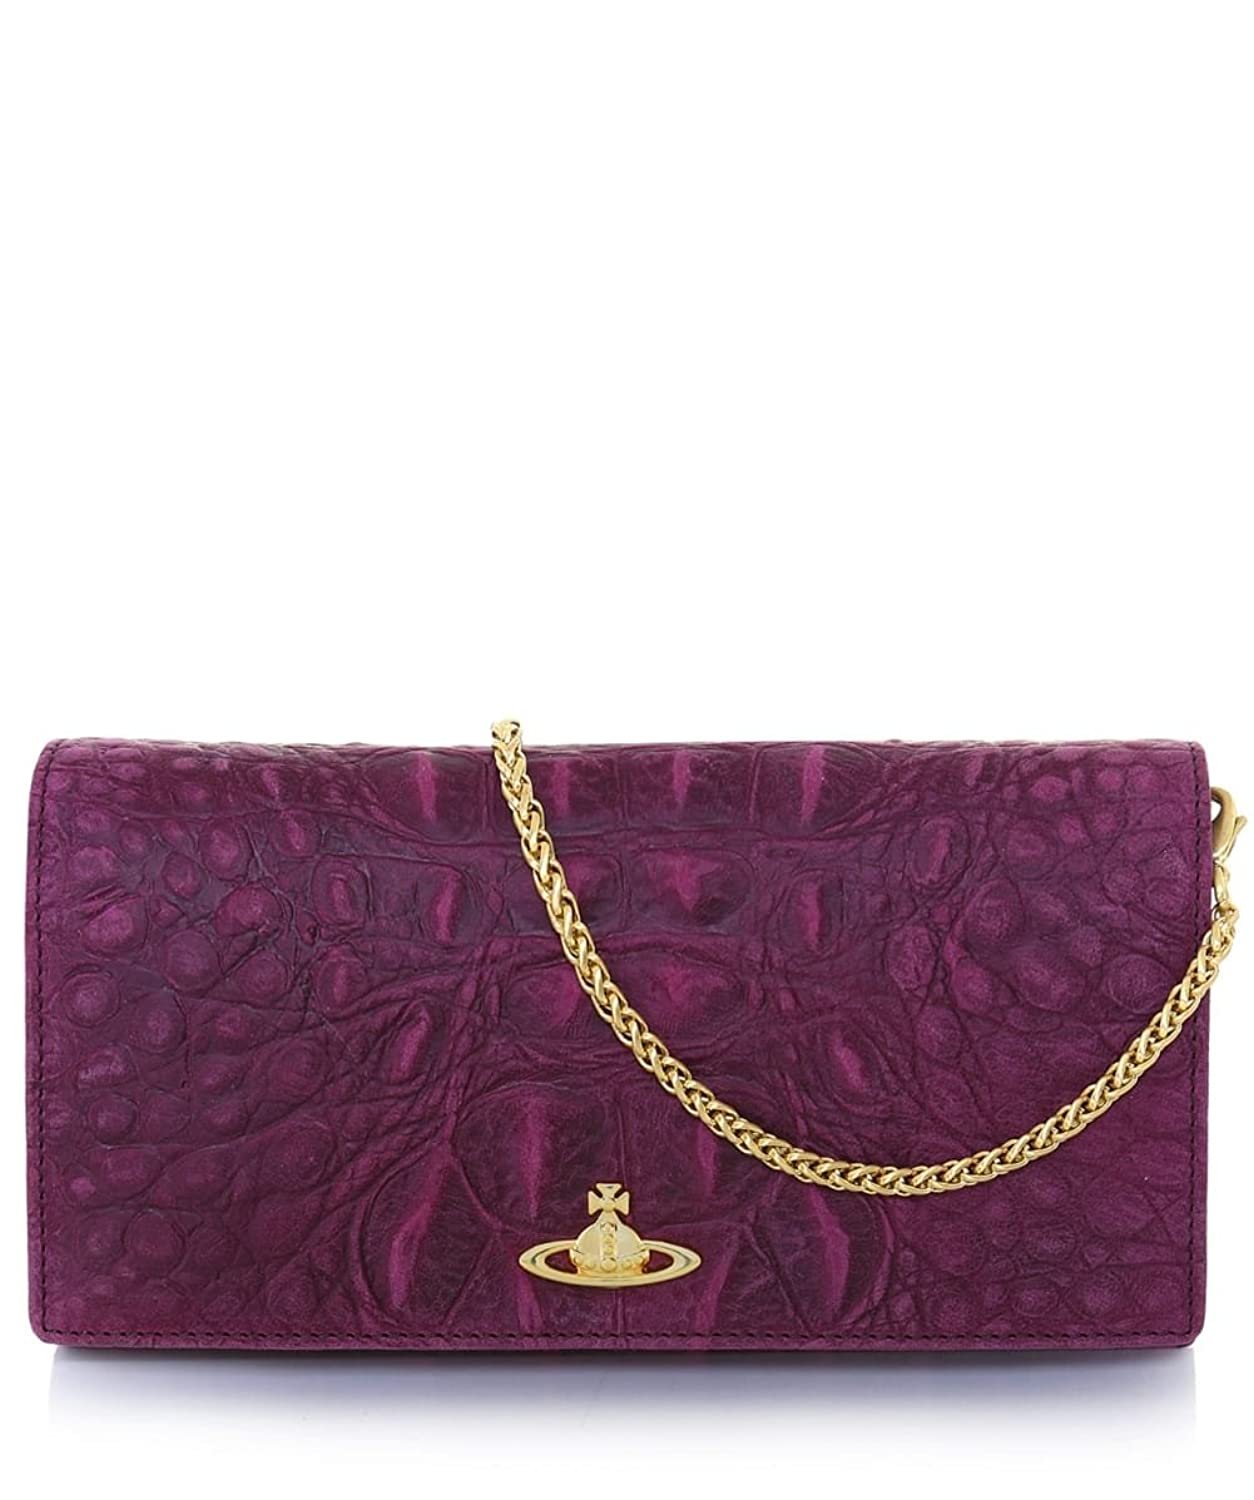 Vivienne Westwood Accessories Women's Amazonia Leather Clutch Bag Purple